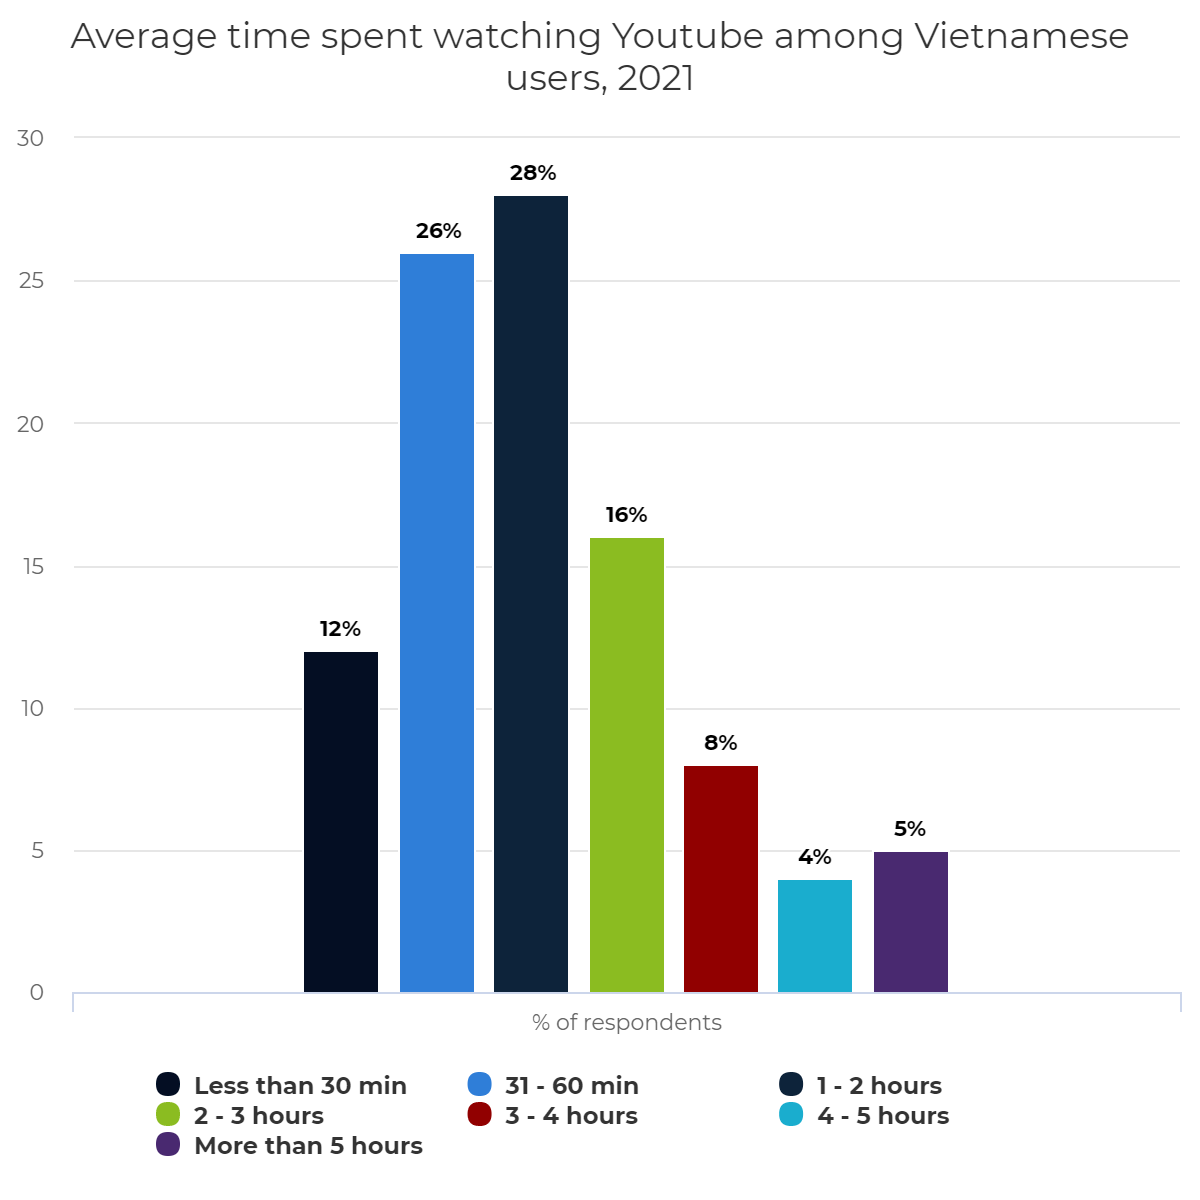 Average time spent watching Youtube among Vietnamese users, 2021